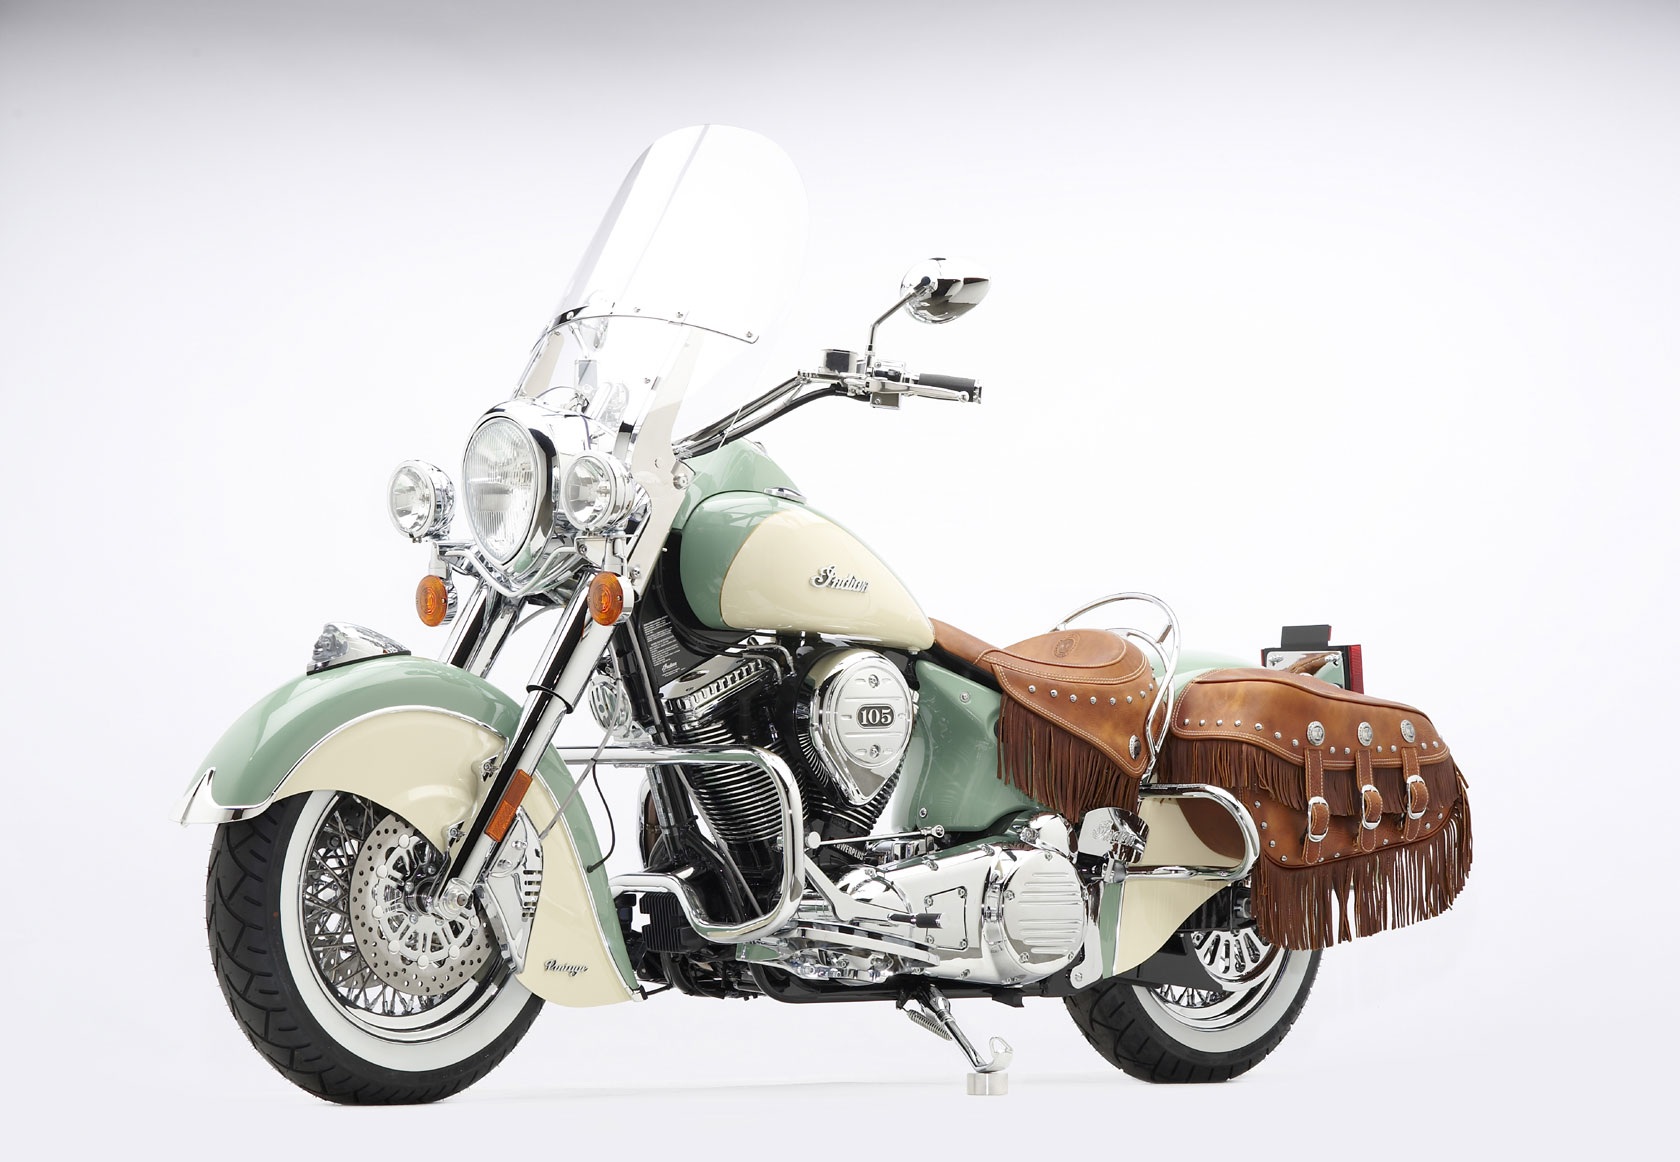 Indian Chief Vintage 2010 images #99573